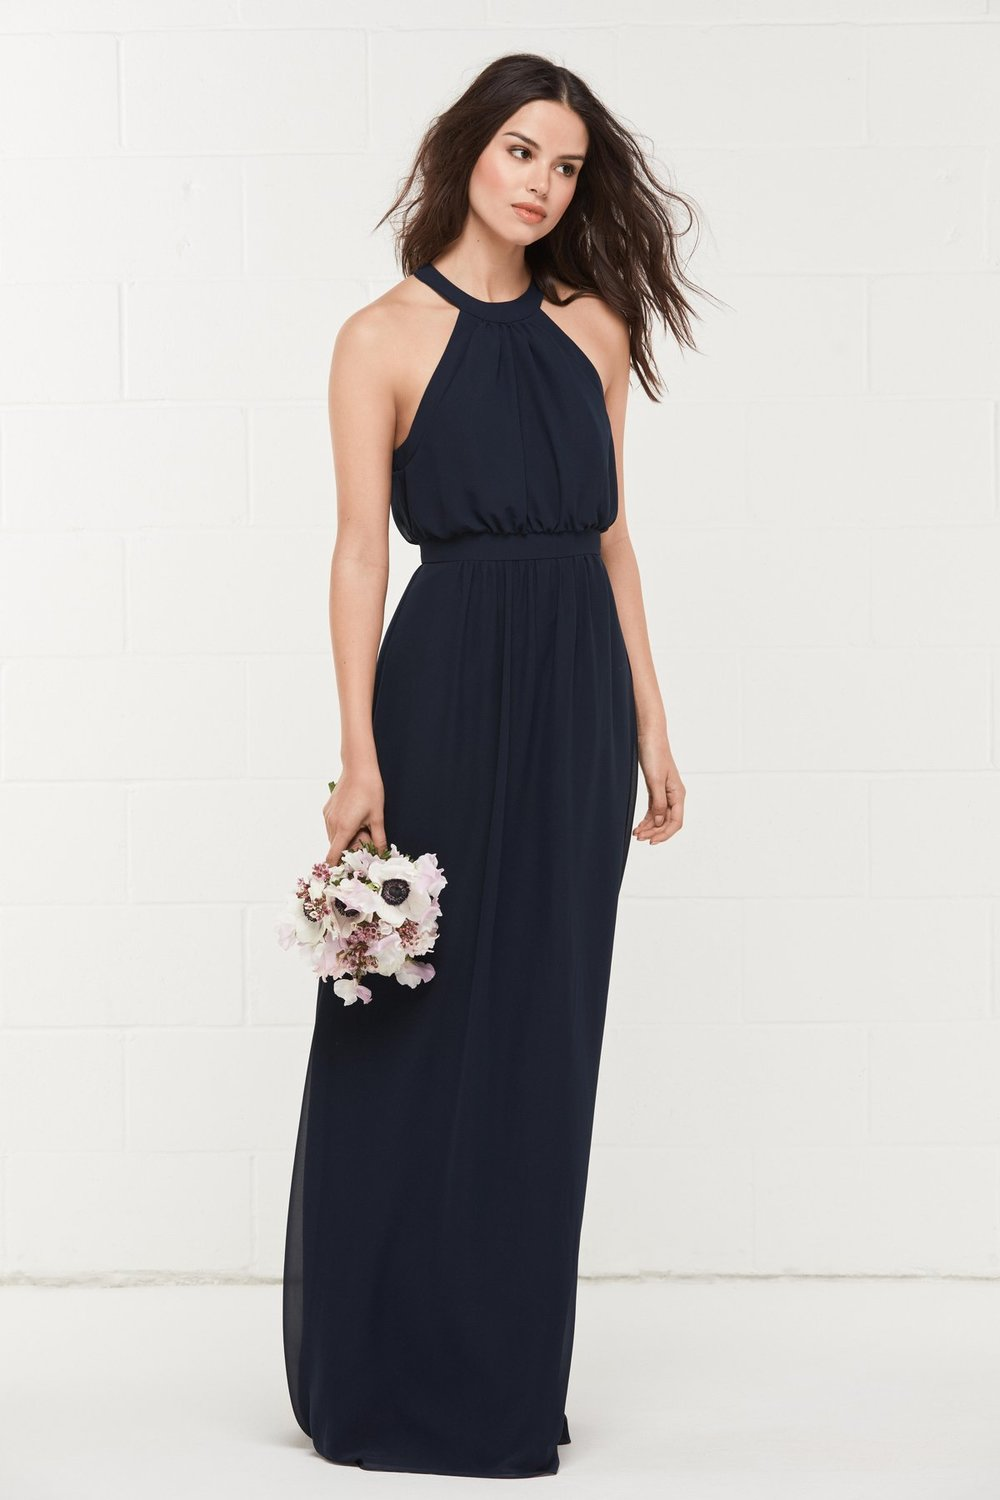 Classic WToo style 403 by Watters Wtoo Bridesmaids in navy